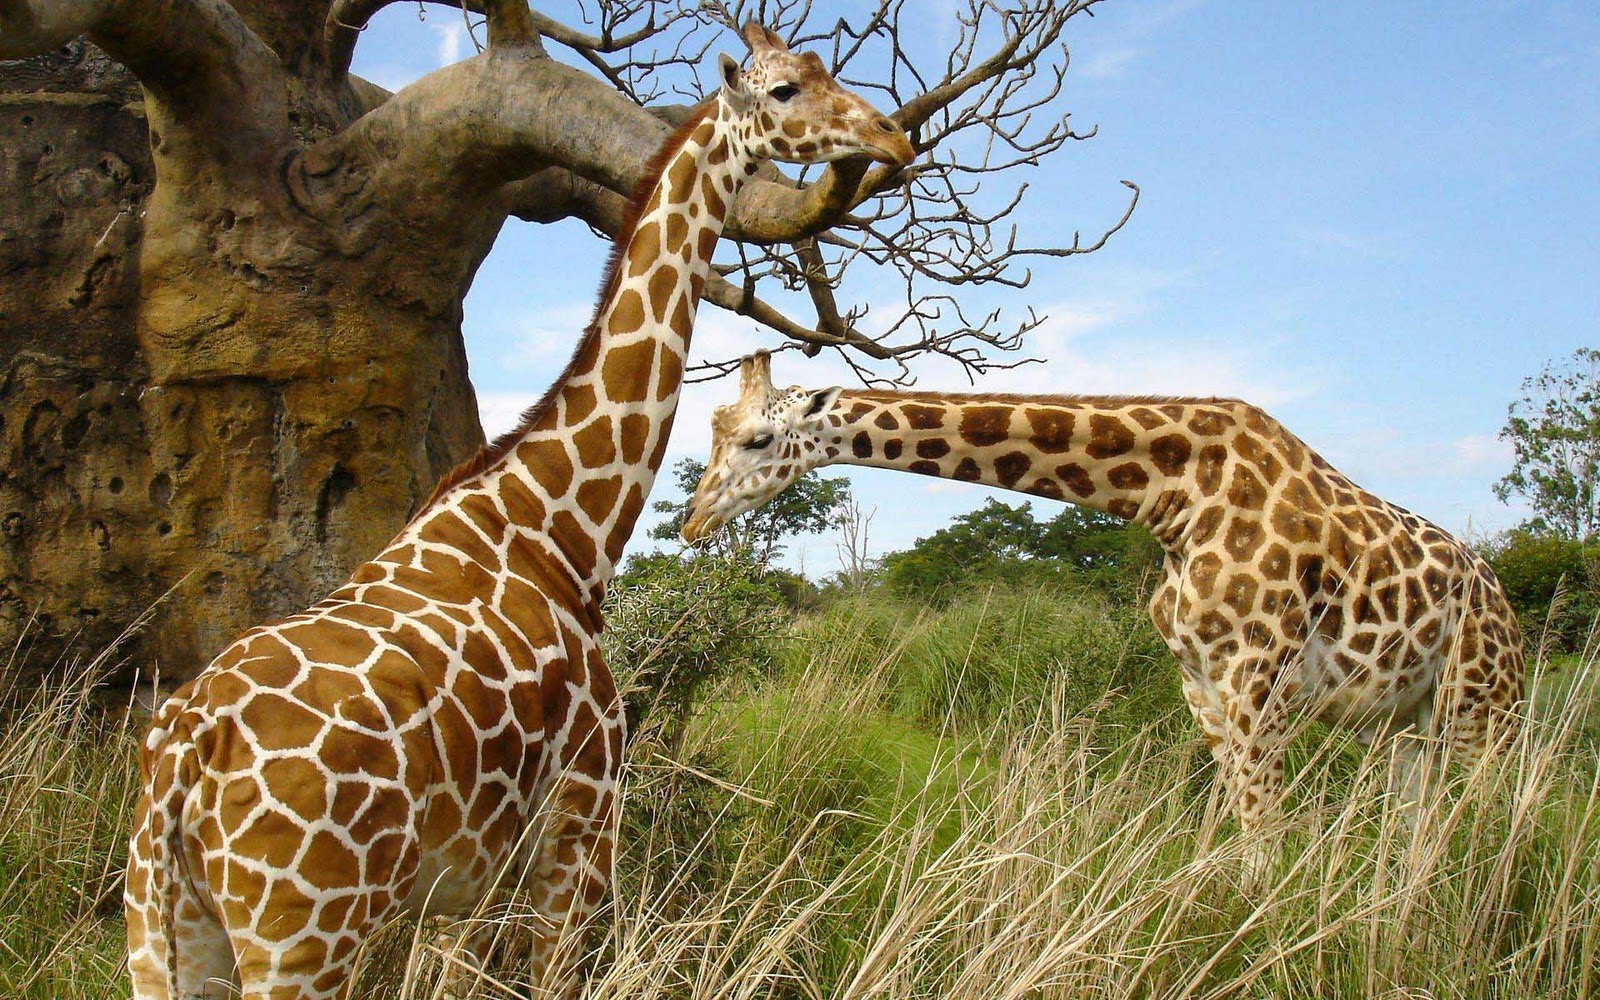 giraffe wallpapers hd pictures - photo #18